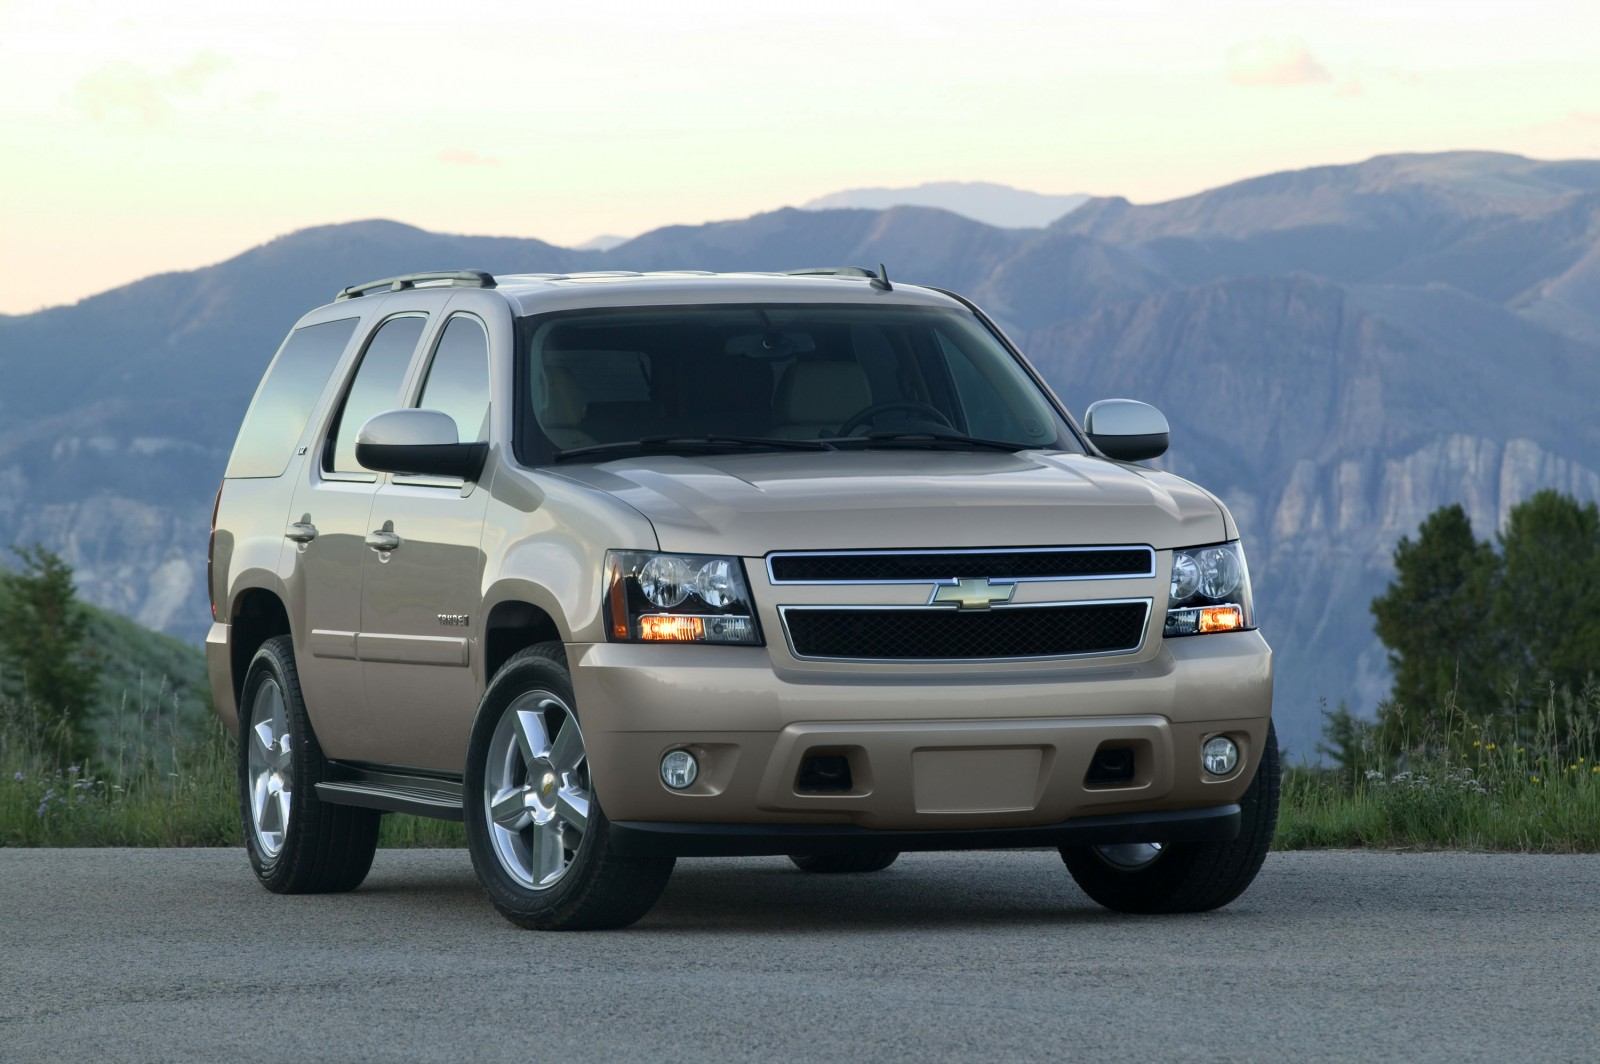 2013 chevy tahoe bradenton tampa fl cox chevrolet. Black Bedroom Furniture Sets. Home Design Ideas